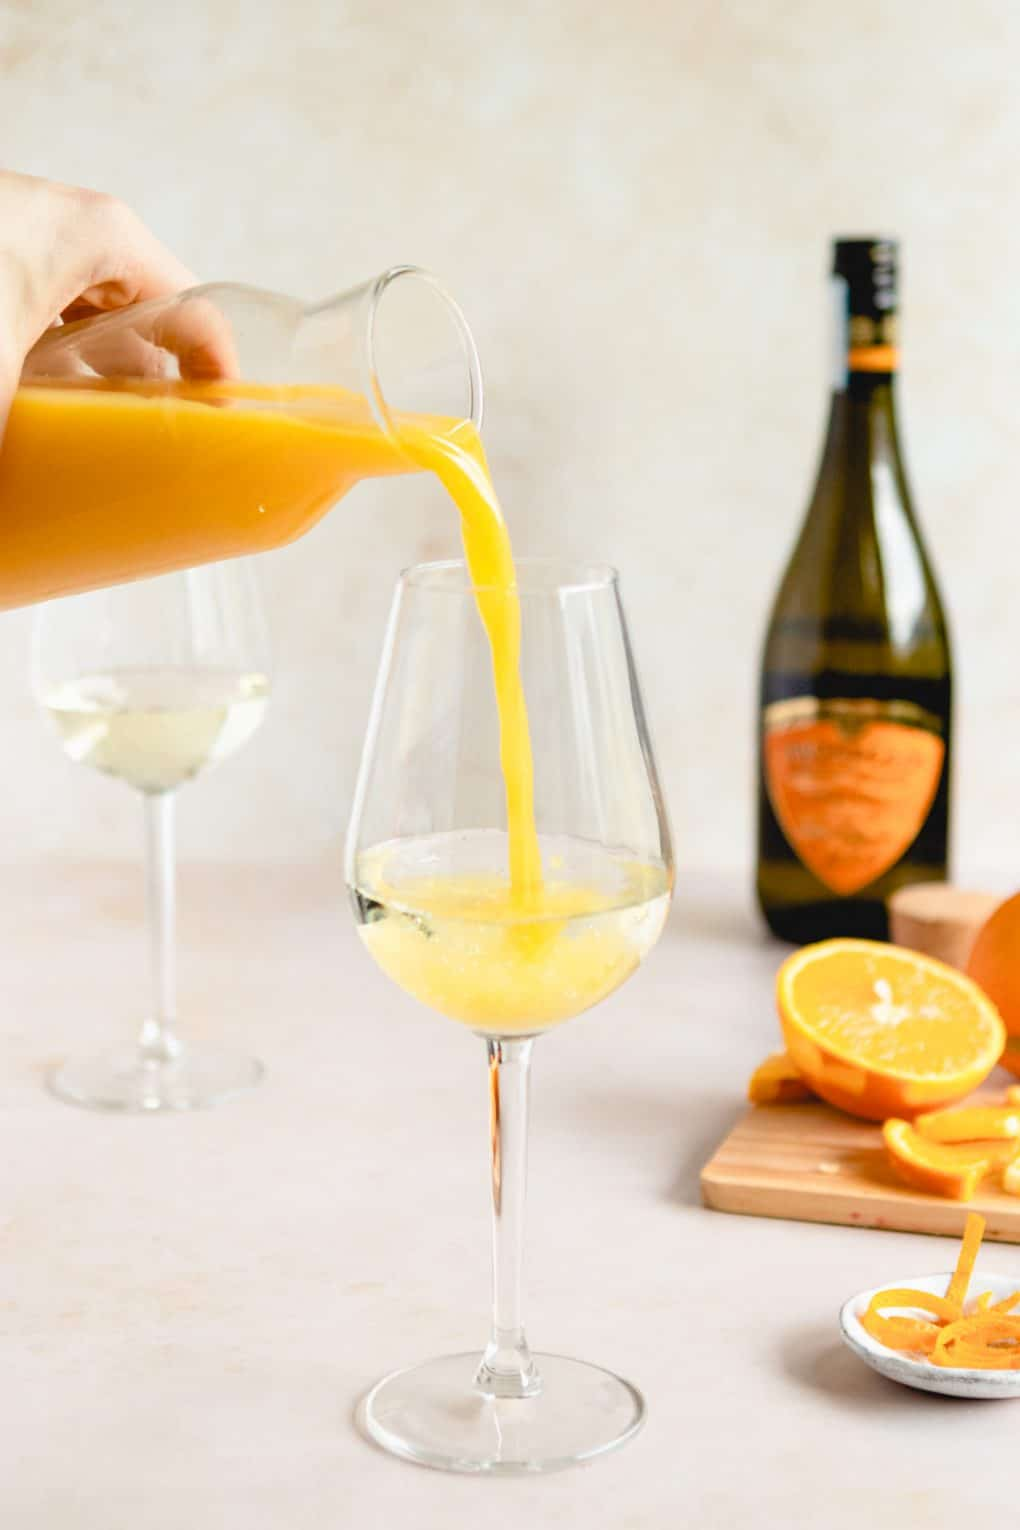 pouring orange juice into a glass for a classic mimosa